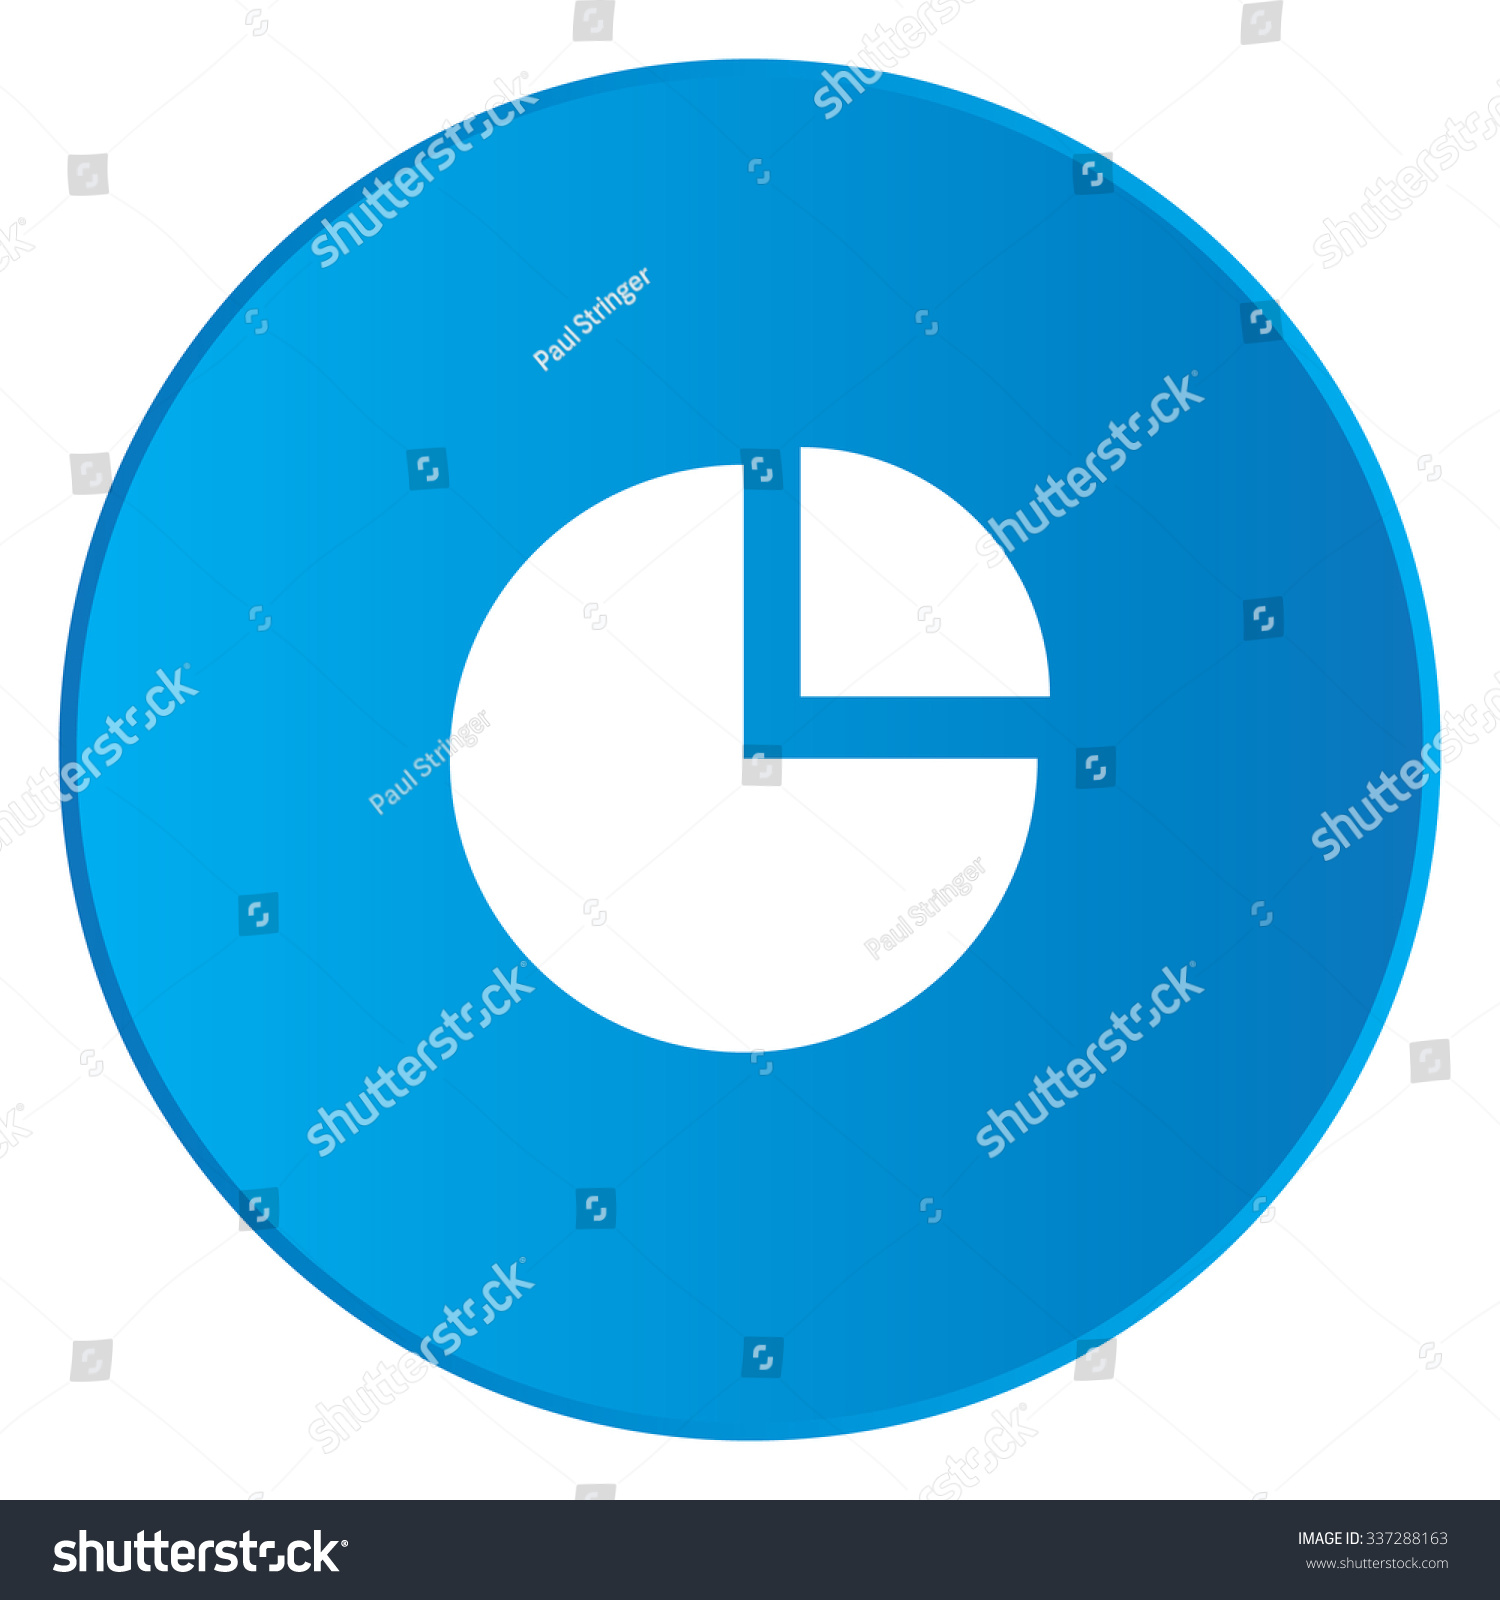 White icon isolated on blue button stock illustration 337288163 a white icon isolated on a blue button pie chart exploded nvjuhfo Image collections